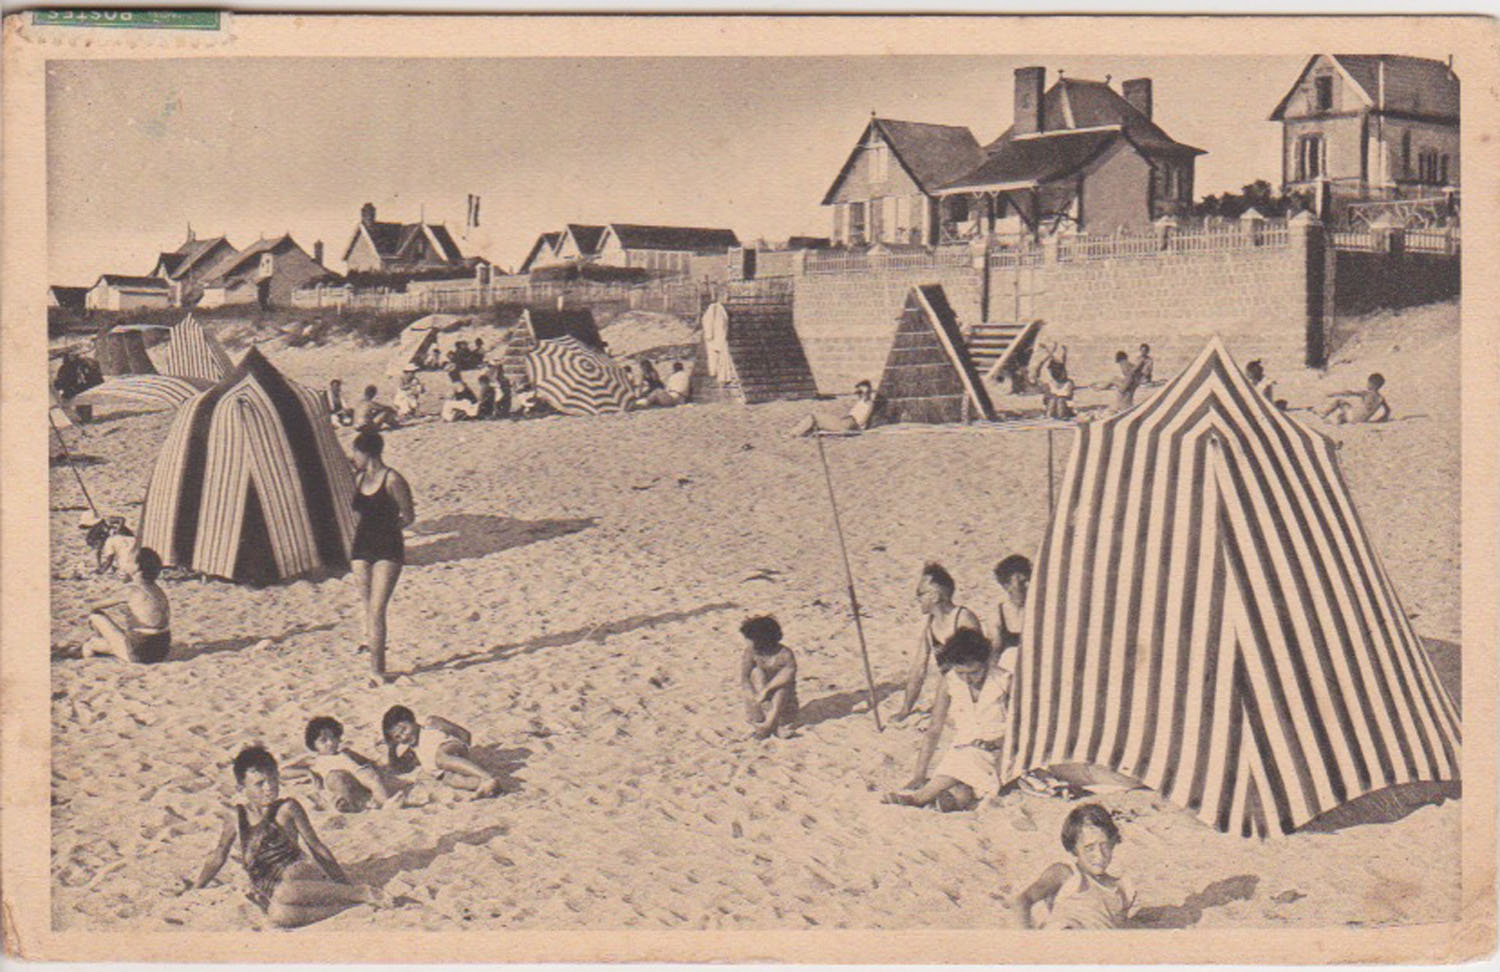 1937 St Martin Plage © collection Jean Claude Ferret